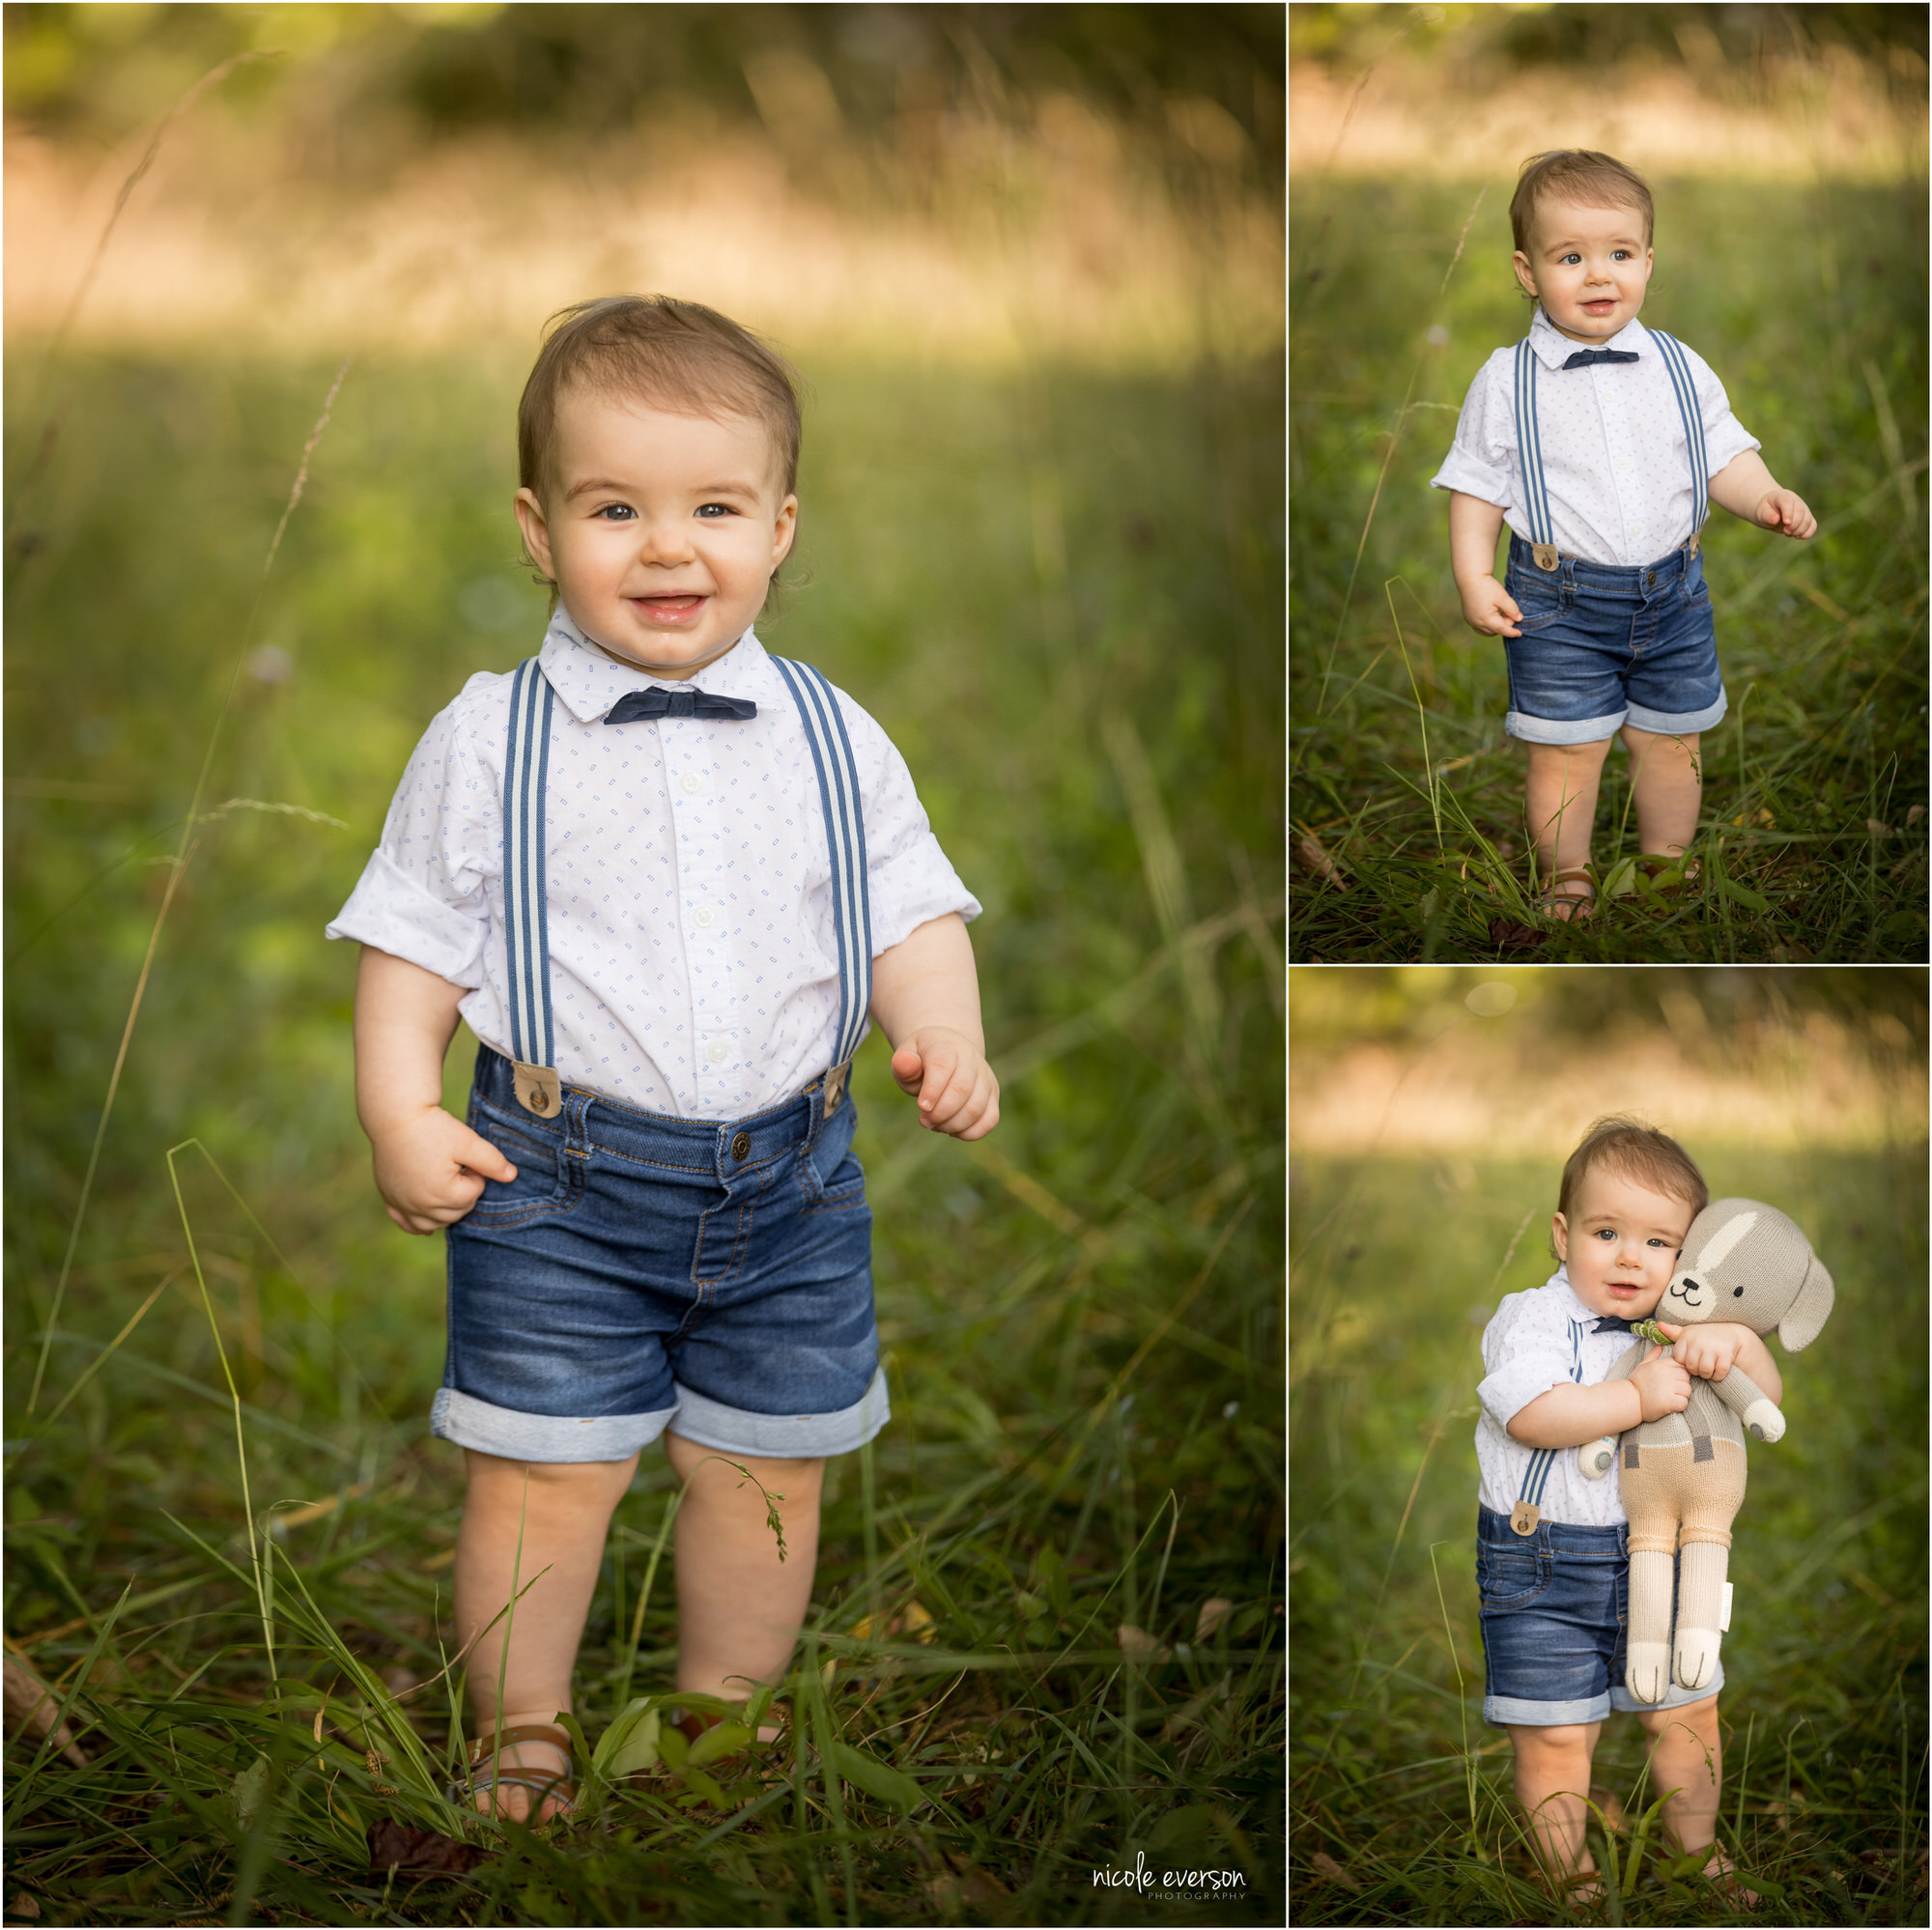 baby photos and toddler pictures of a baby boy in a white shirt and suspenders